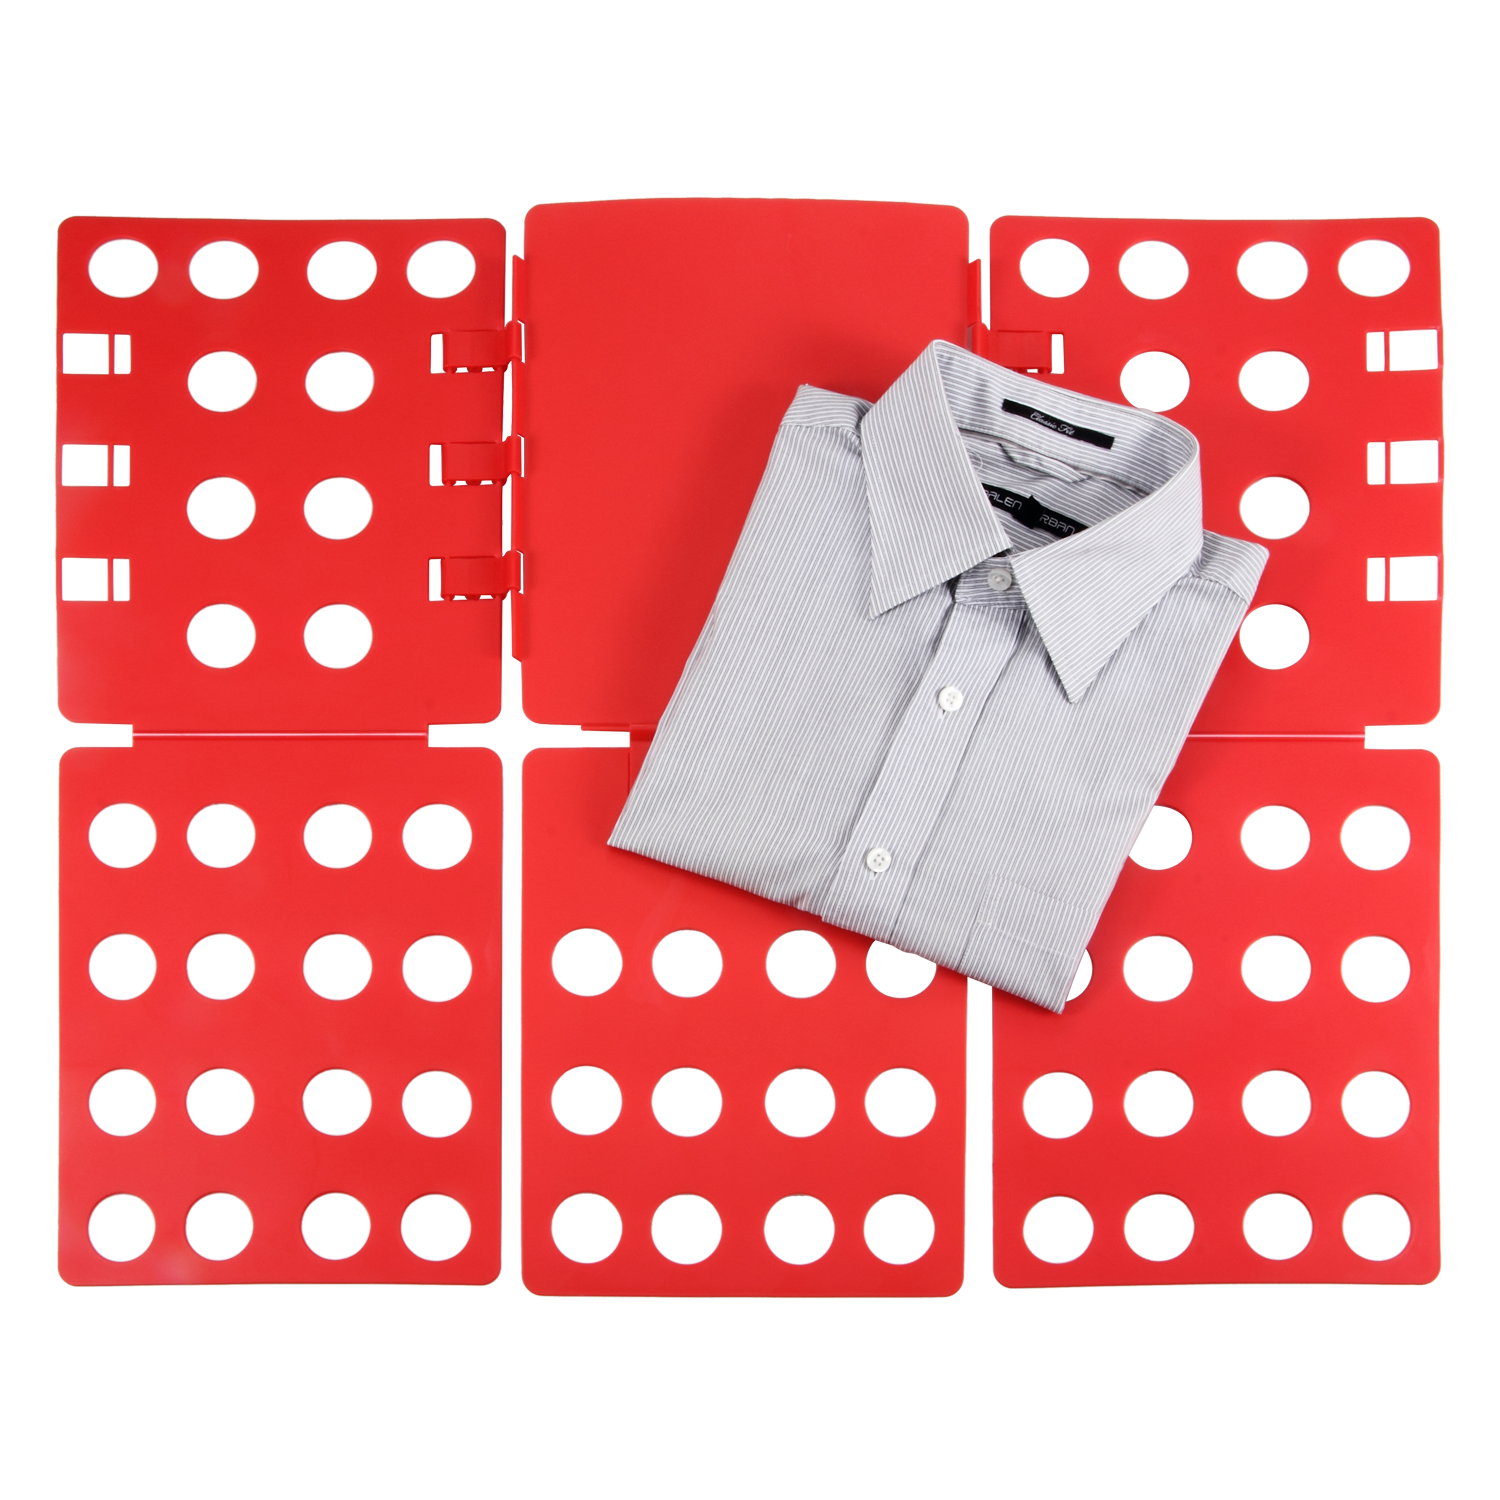 Allieroo Convenient Clothes Folder Organize Plastic T Shirt Fold Board Thickness Adjustable Laundry Folding Board, Red